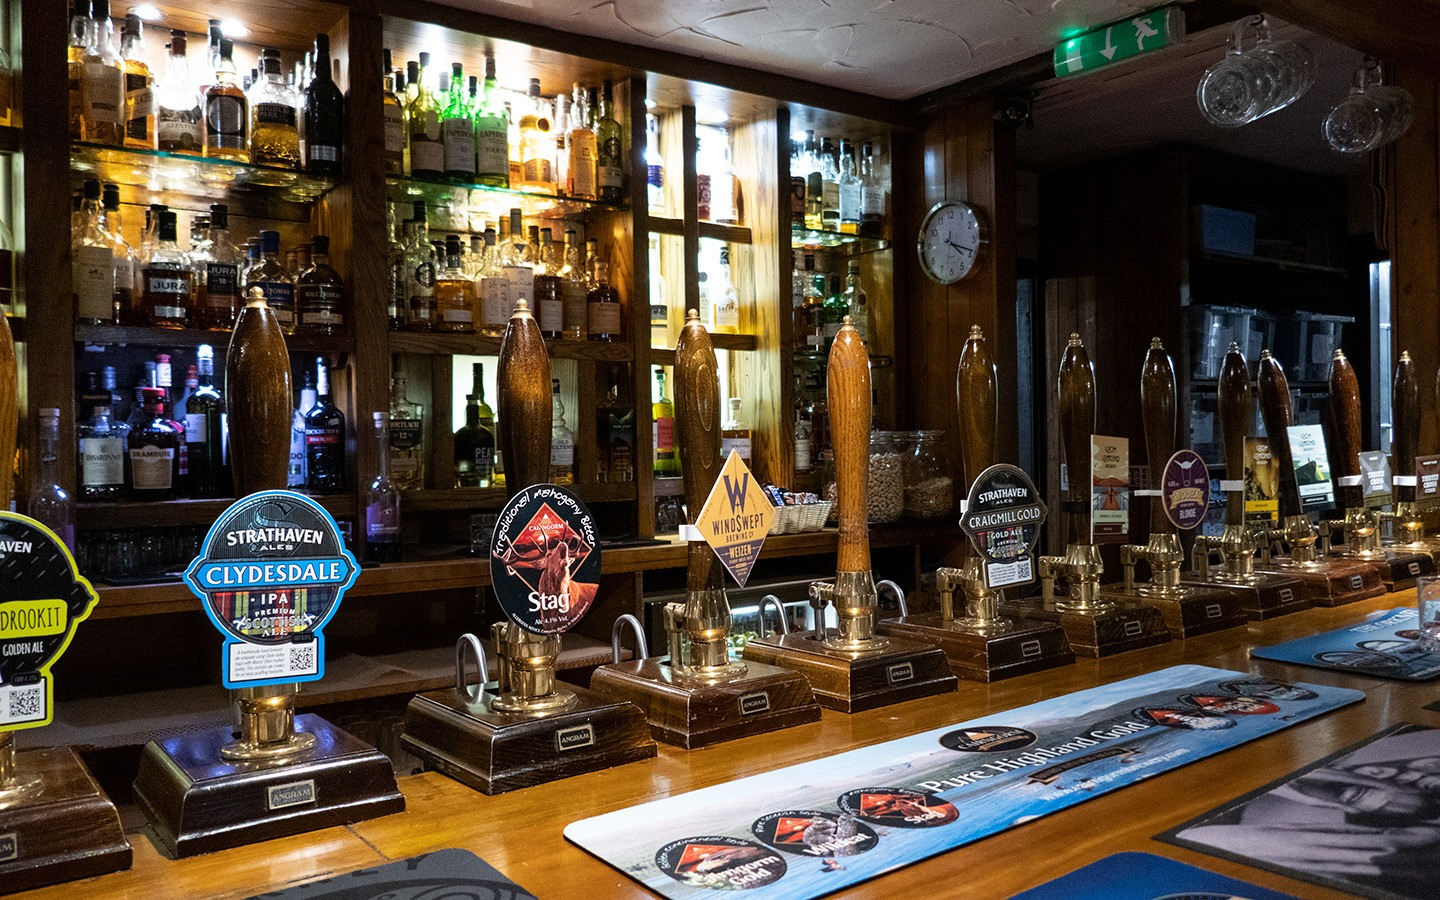 Beer pumps in the Clachaig Inn in Glencoe in the Scottish Highlands